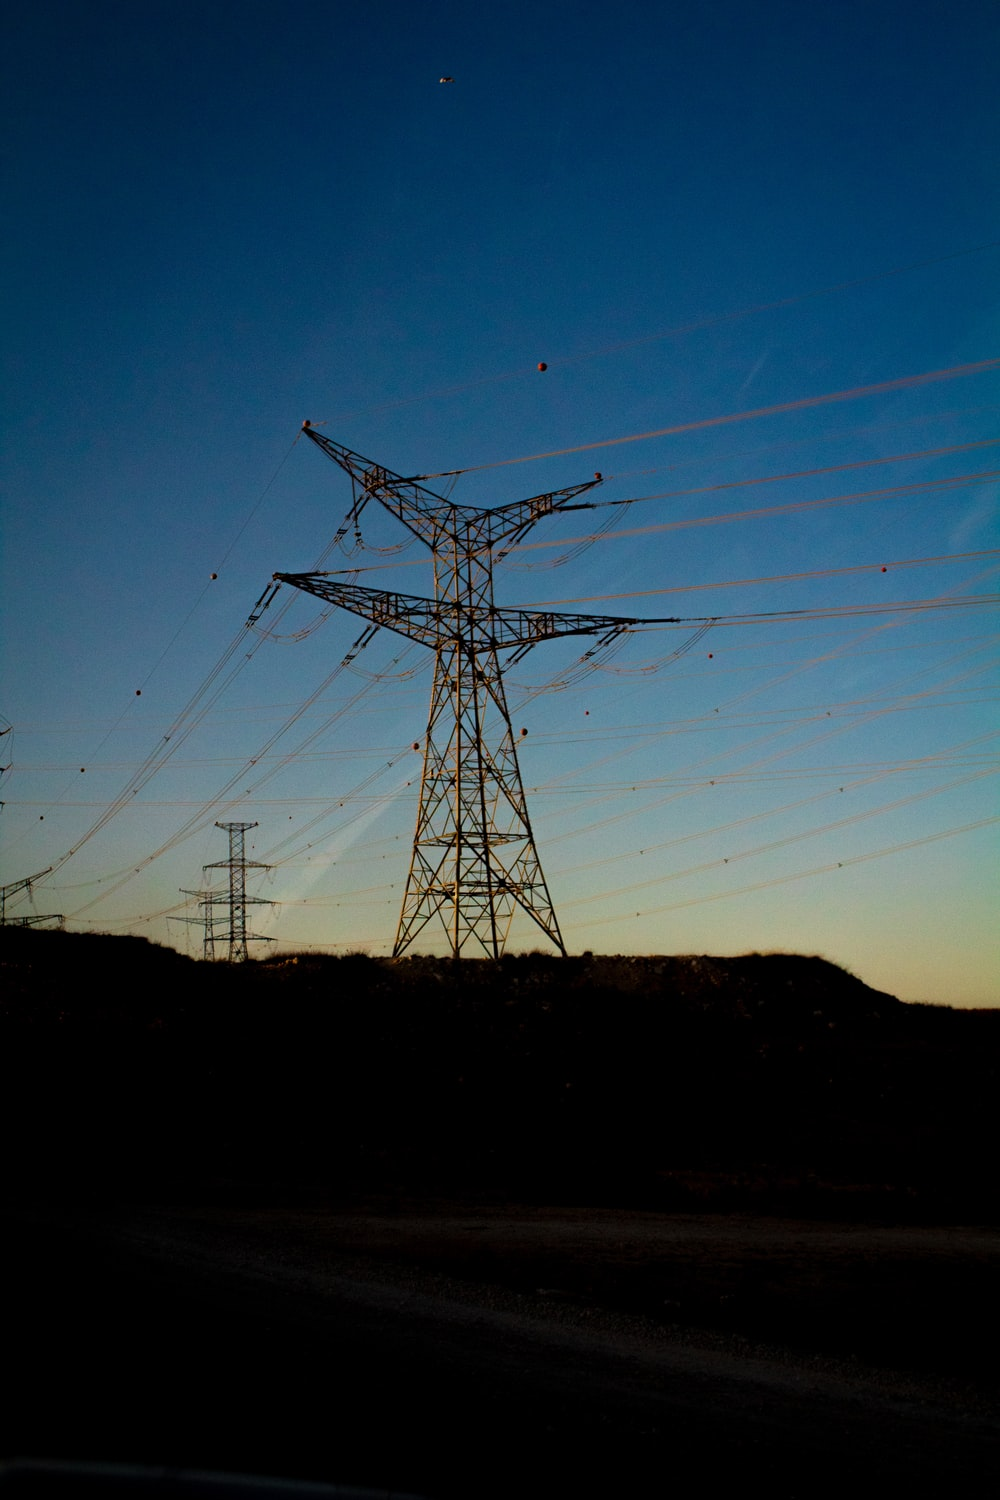 gray electric towers on brown hill under blue sky during daytime